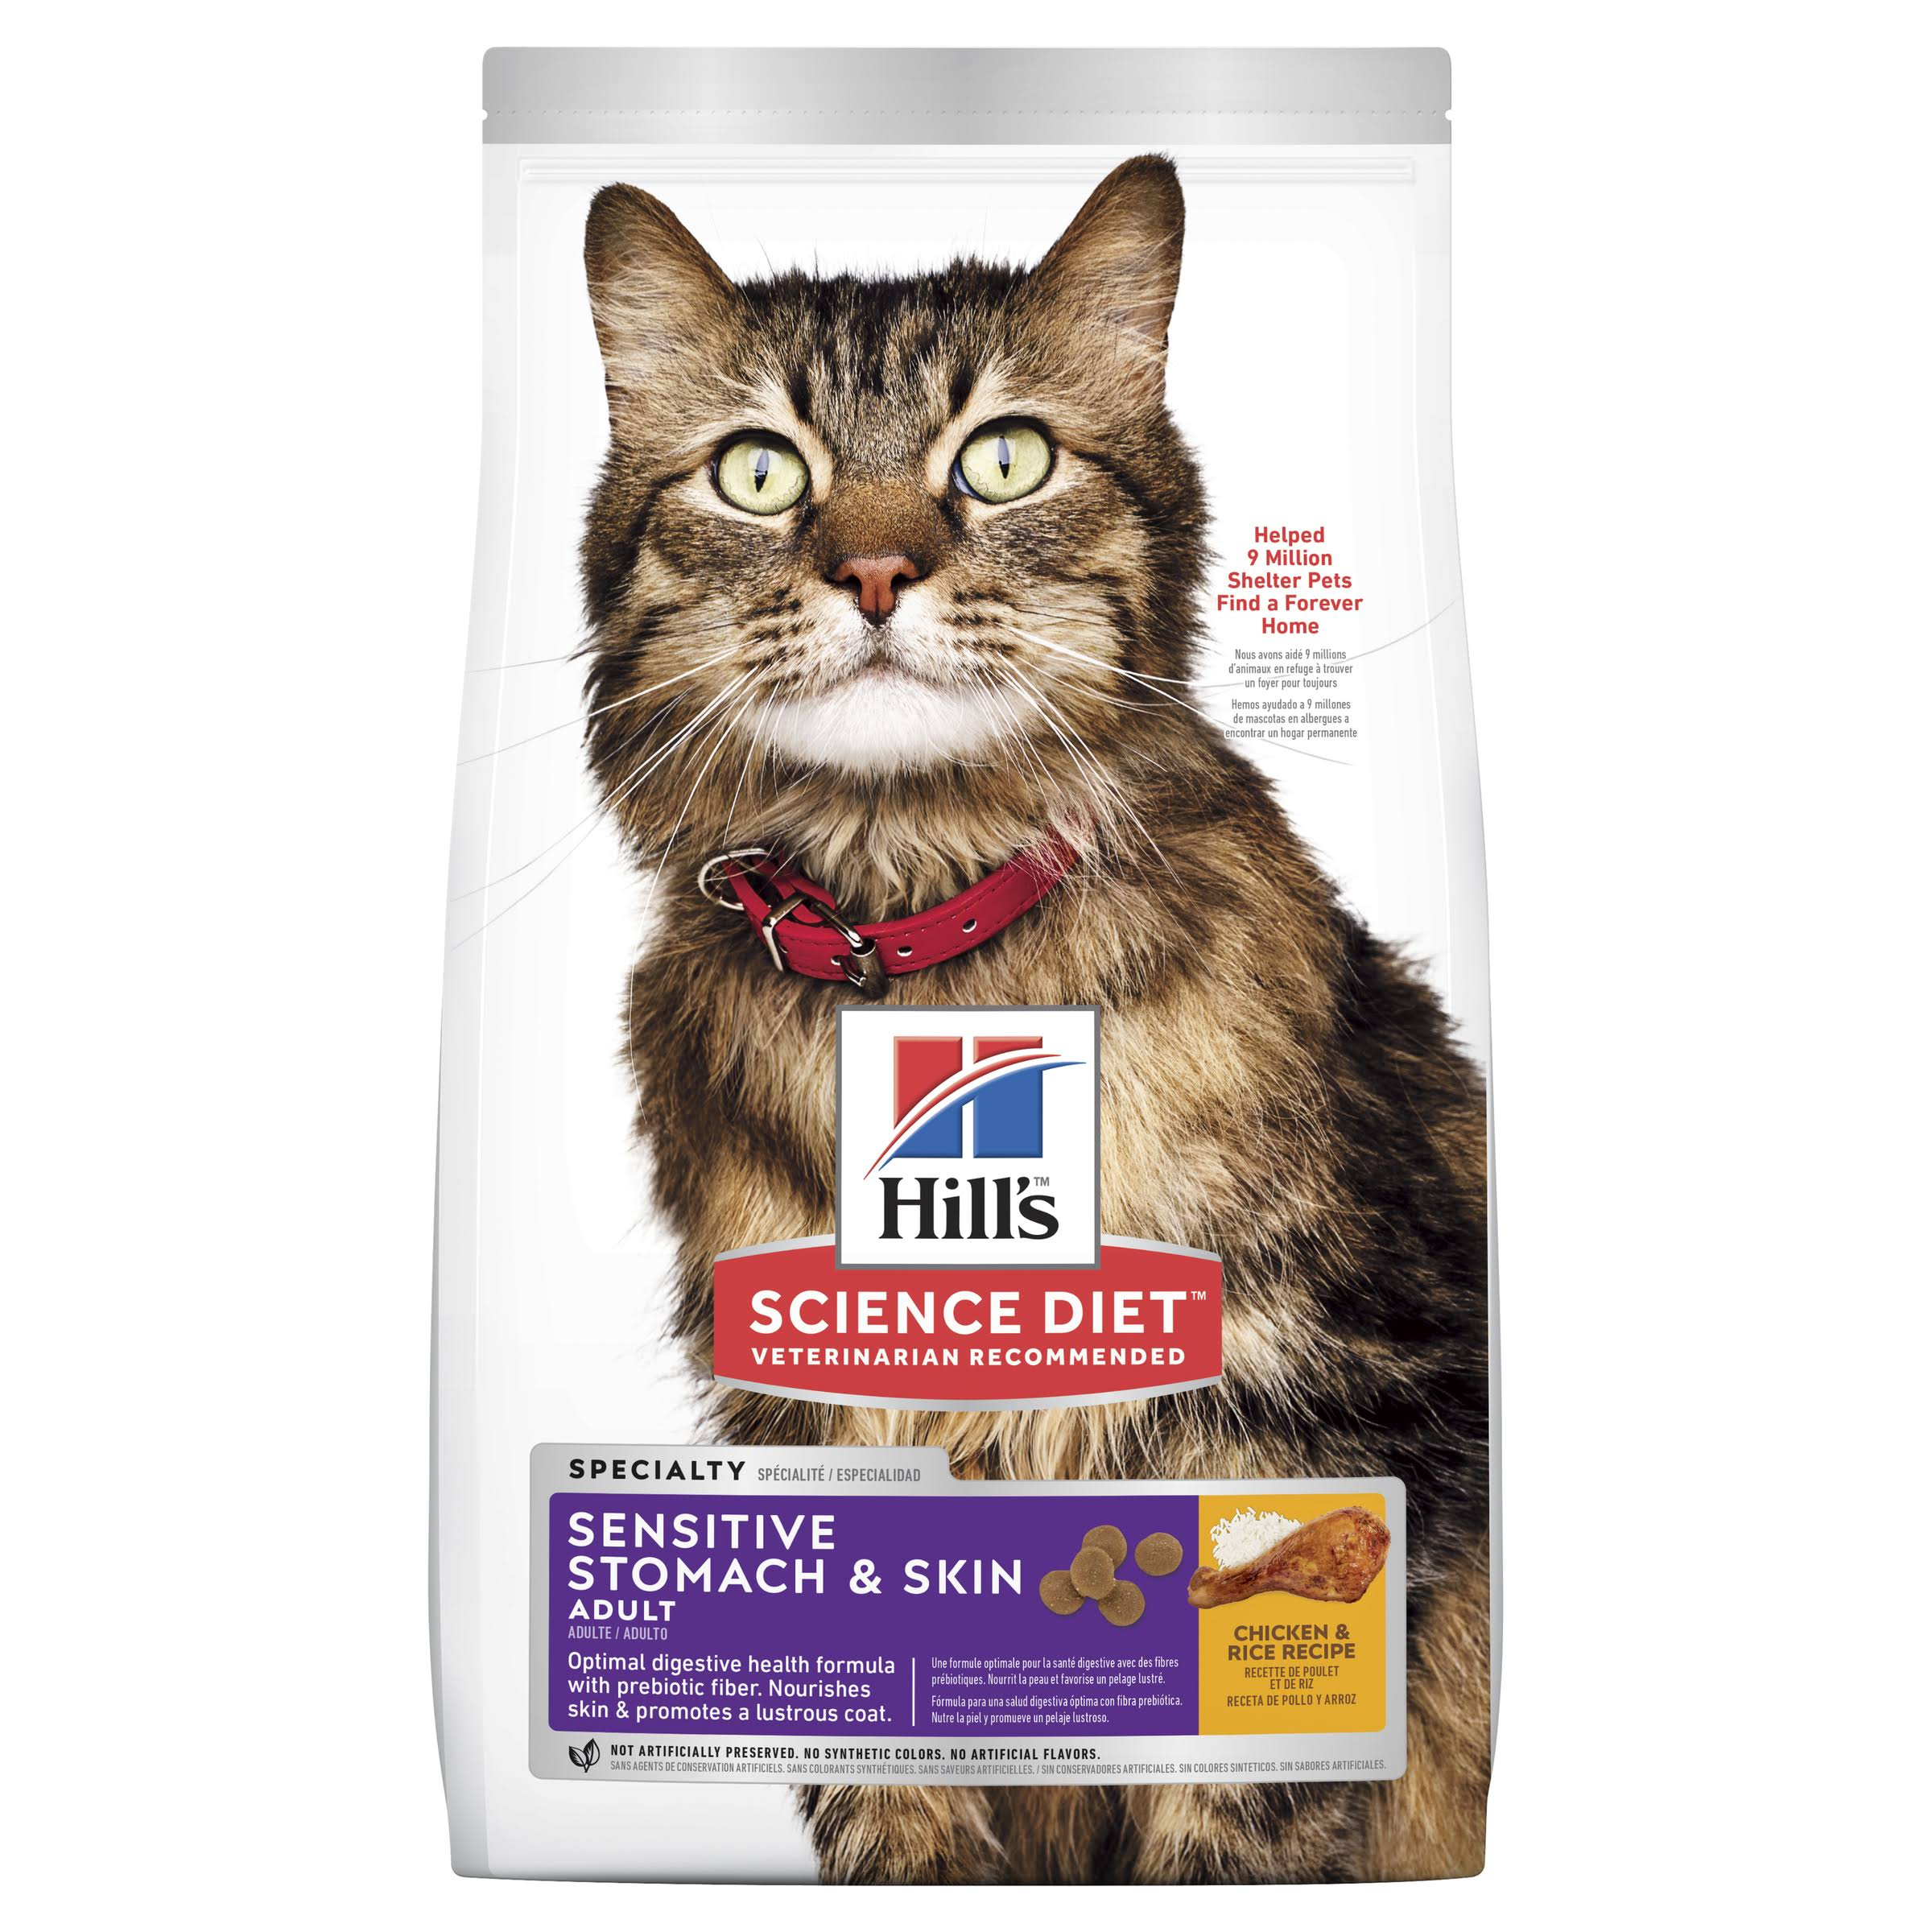 Hill's Science Diet Sensitive Stomach and Skin Cat Food - Rice and Egg Recipe, Adult, 3.5lbs